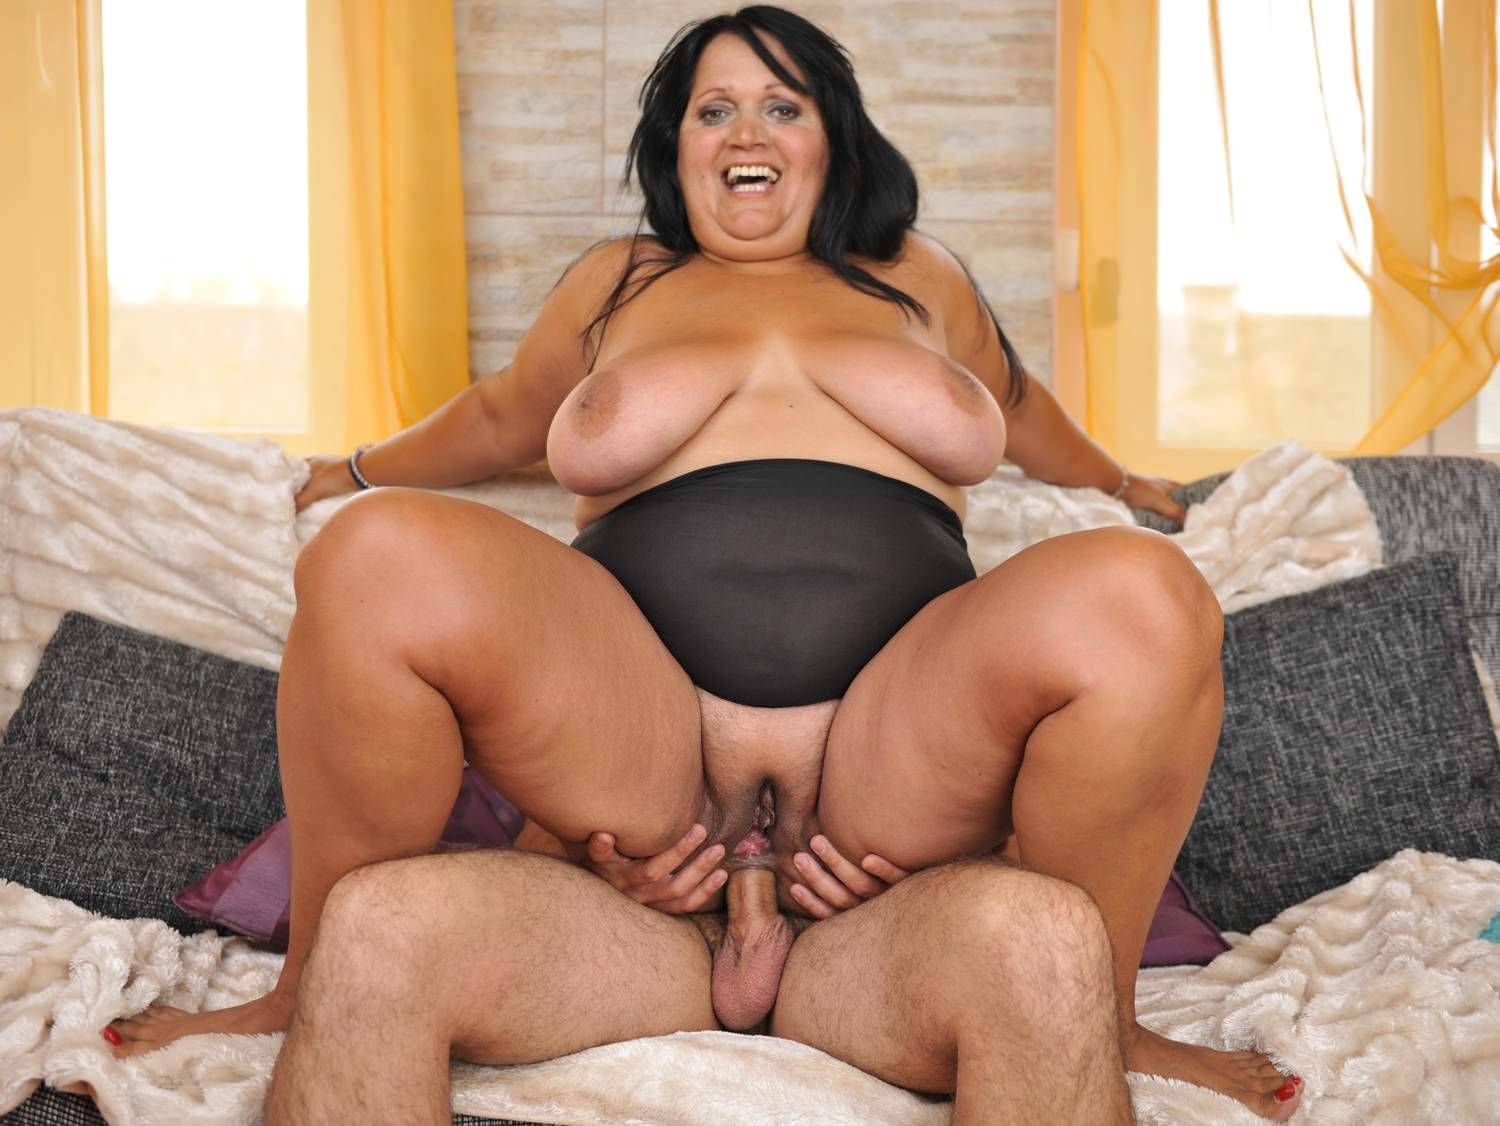 Bbw Granny Ass Fuck Free Bbw Twitter Hd Porn Video Fe-3248